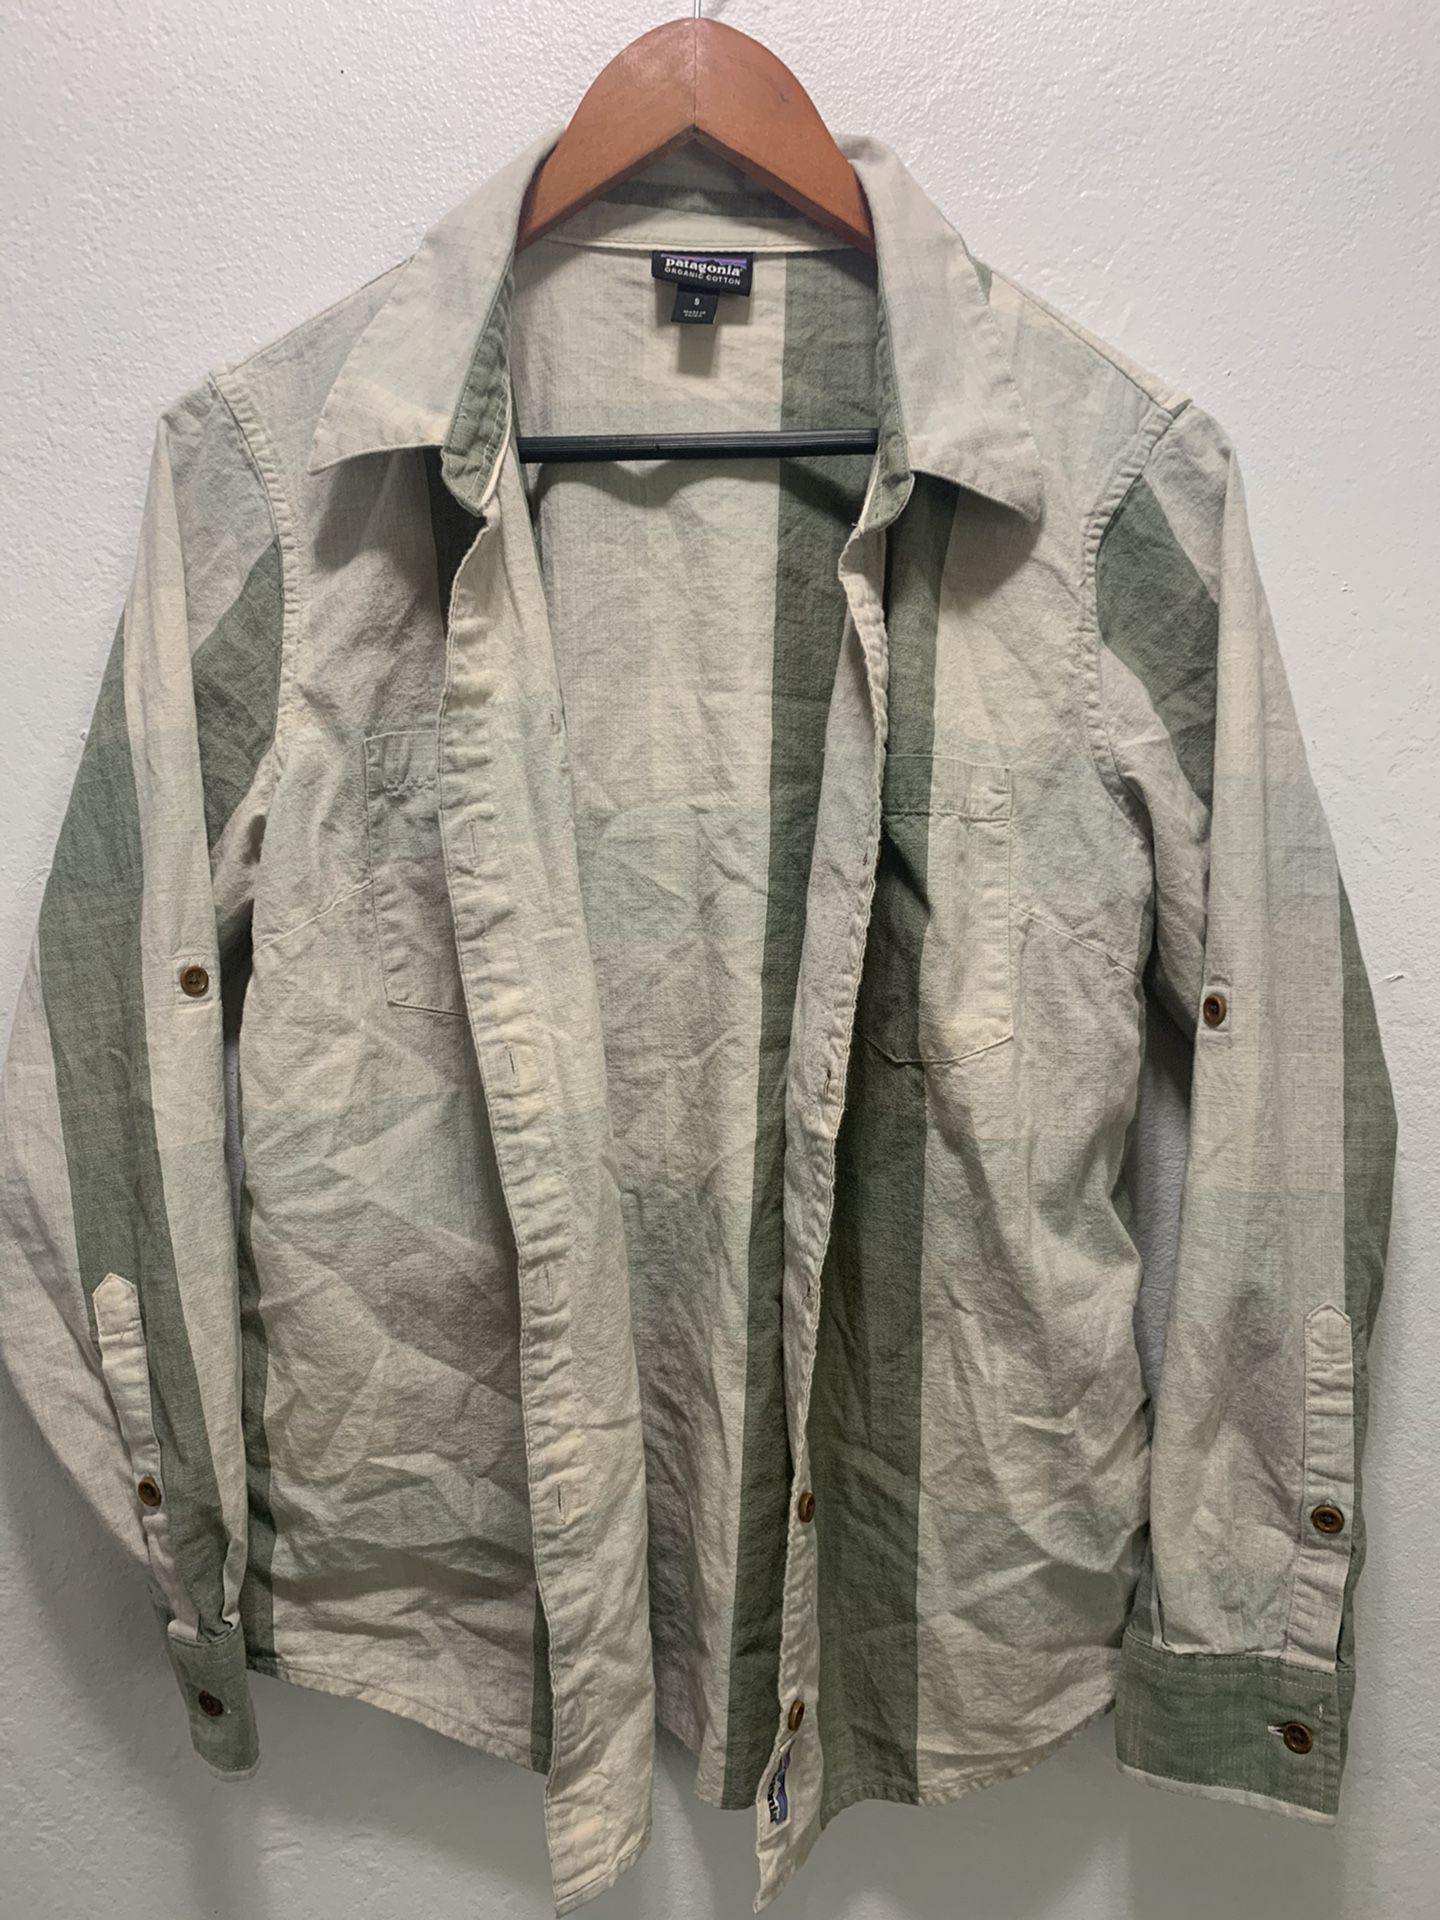 Patagonia button up